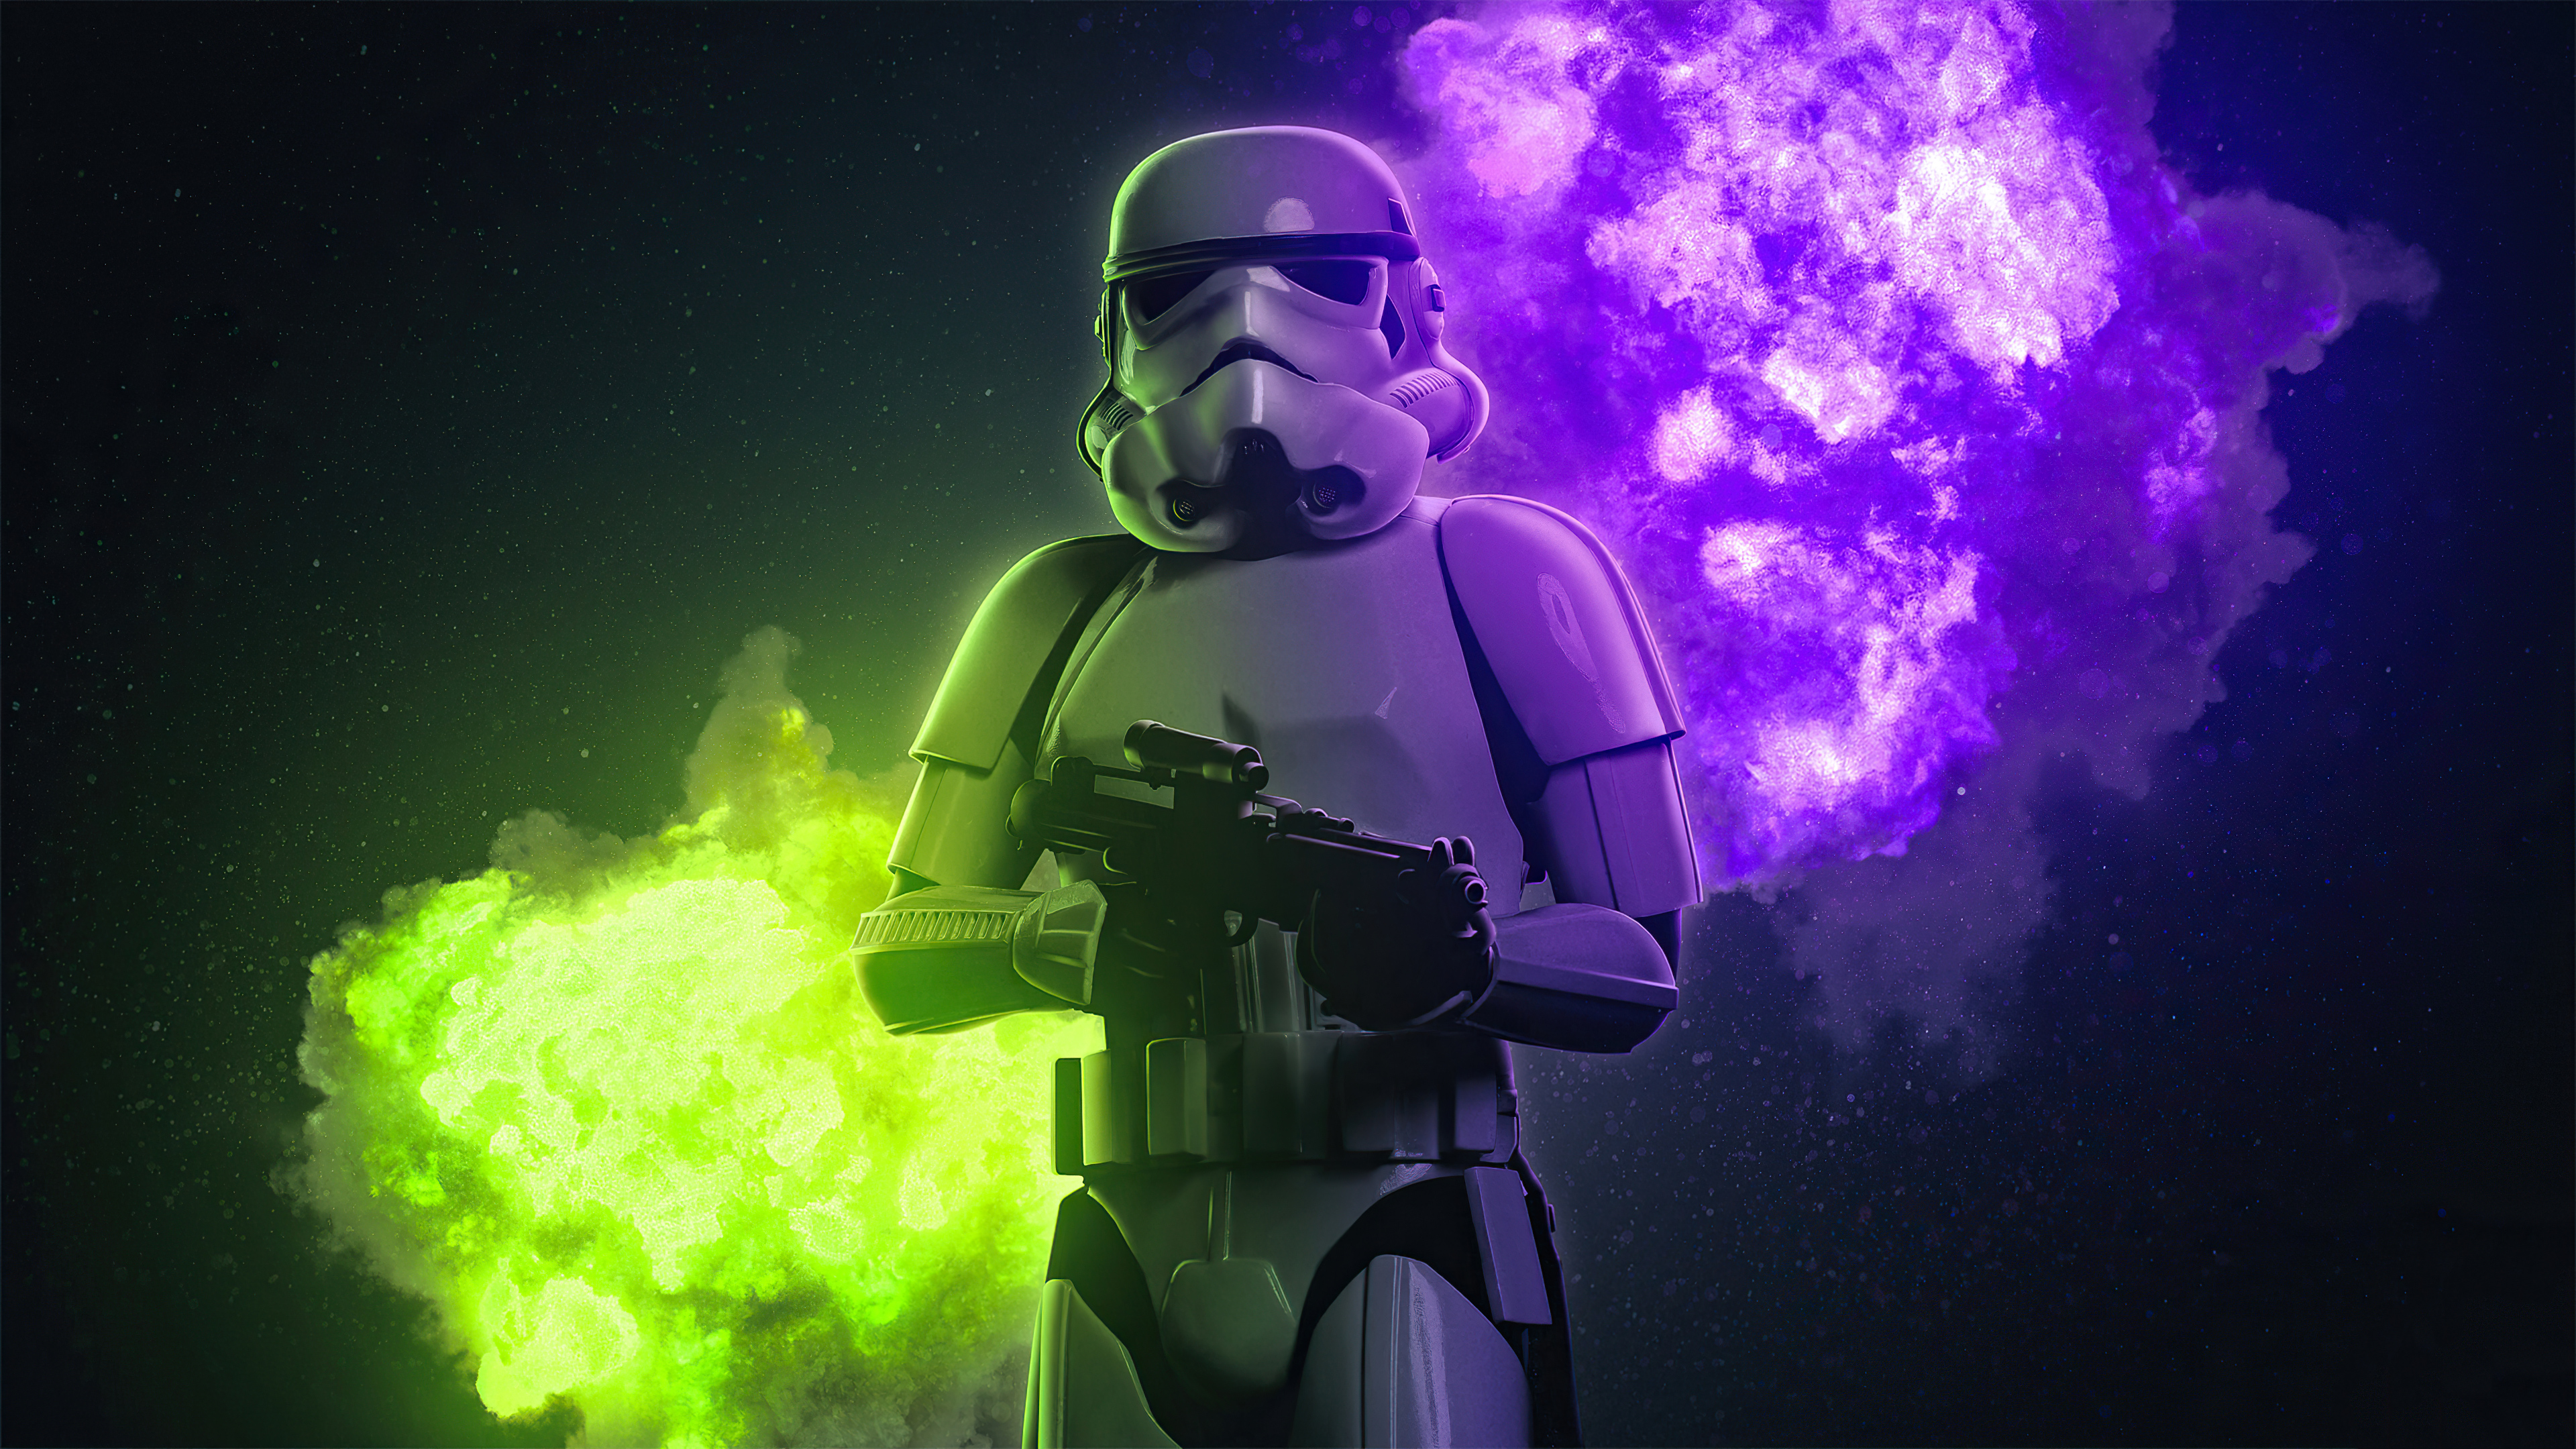 Stormtrooper With A Green And Purple Smoke Background 4k Ultra Hd Wallpaper Background Image 3840x2160 Id 1080776 Wallpaper Abyss